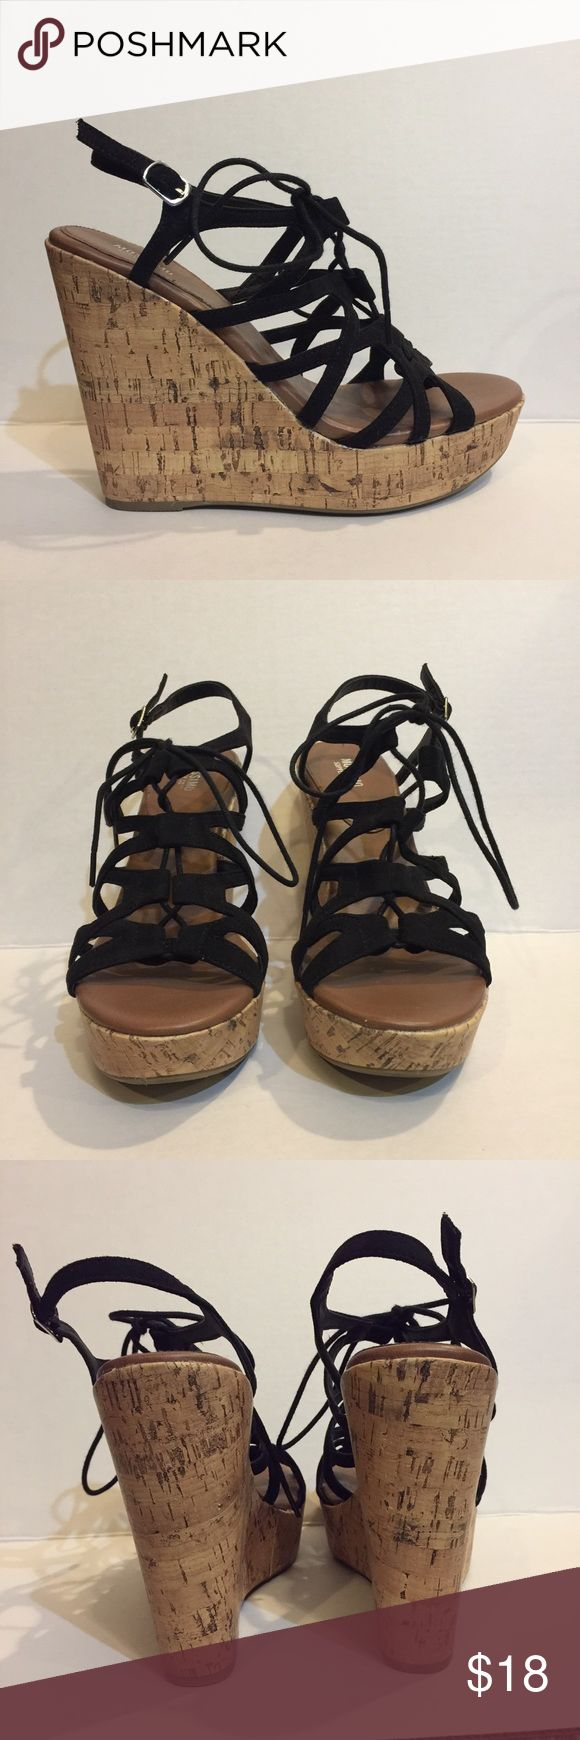 🔥Sexy Lace Up Wedges These lace up wedges are perfect for your night on the town, spring vacation, or just dressing up for fun! Only worn once and in perfect condition Mossimo Supply Co. Shoes Wedges